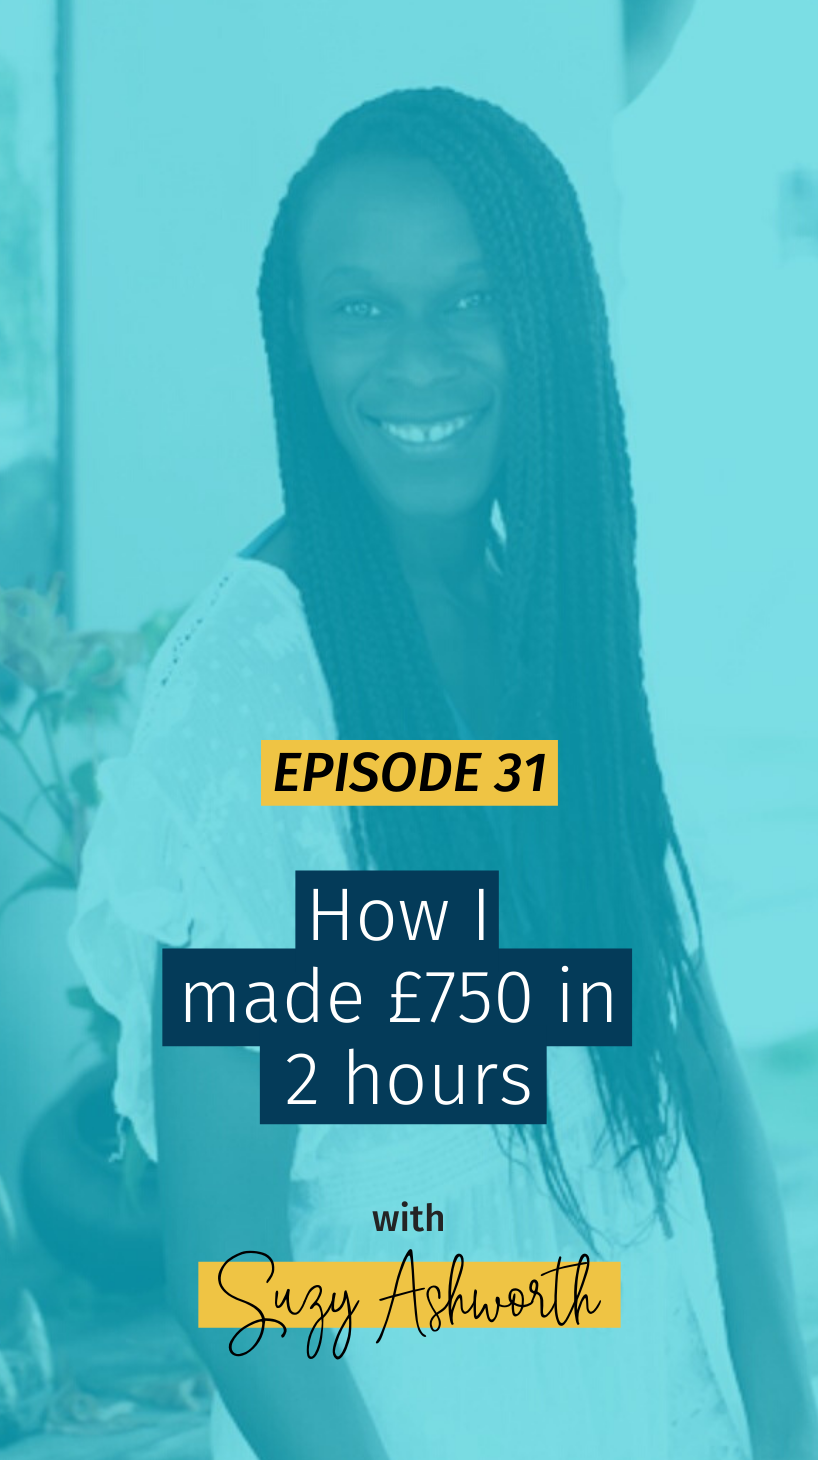 031 How I made £750 in 2 hours